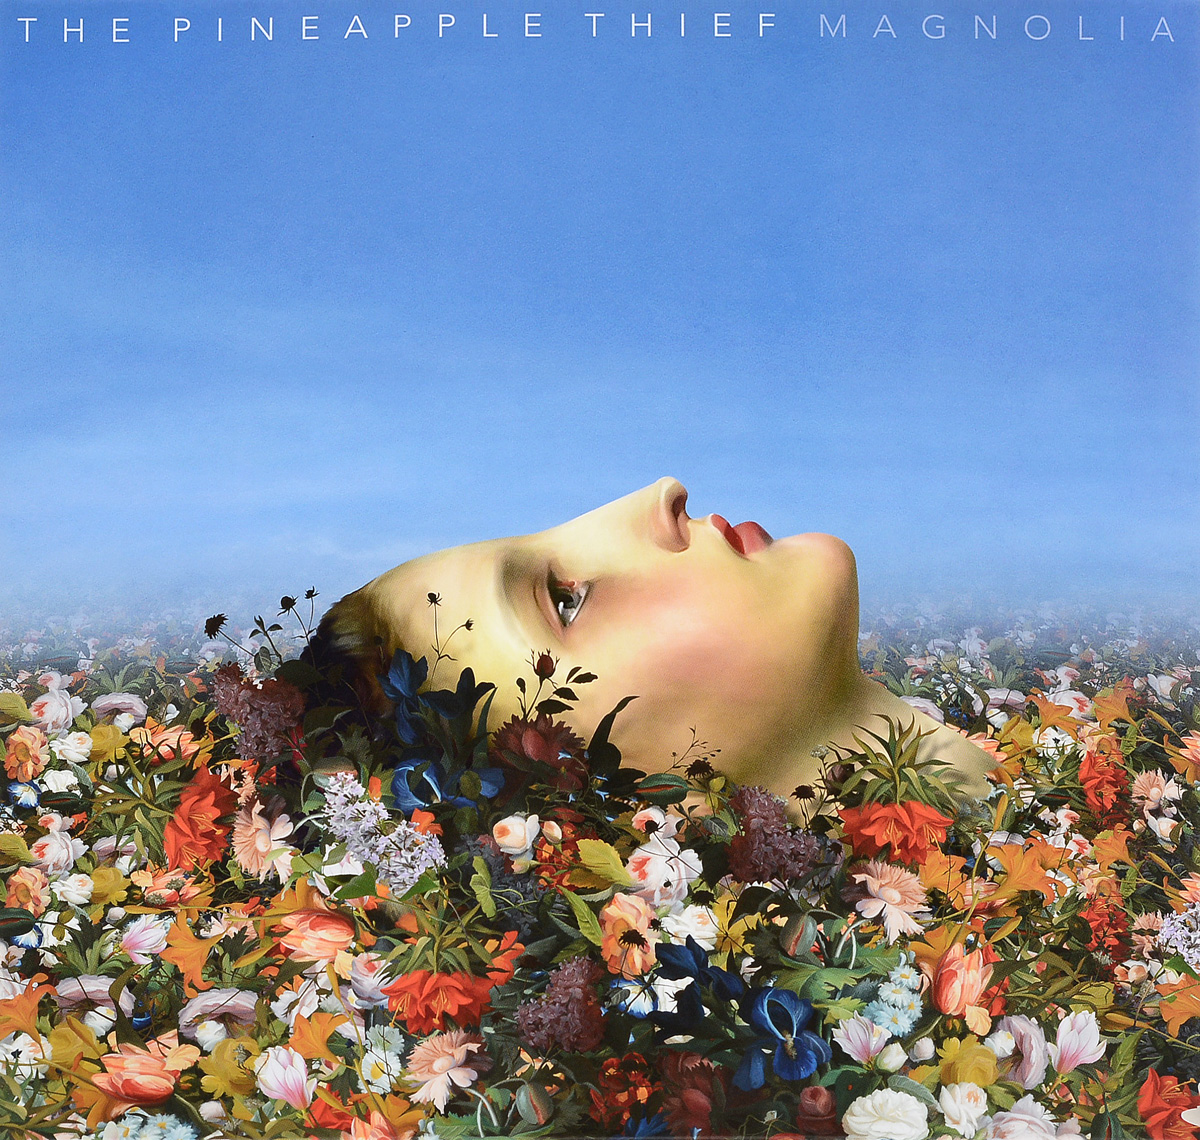 The Pineapple Thief The Pineapple Thief. Magnolia (2 LP) the good thief